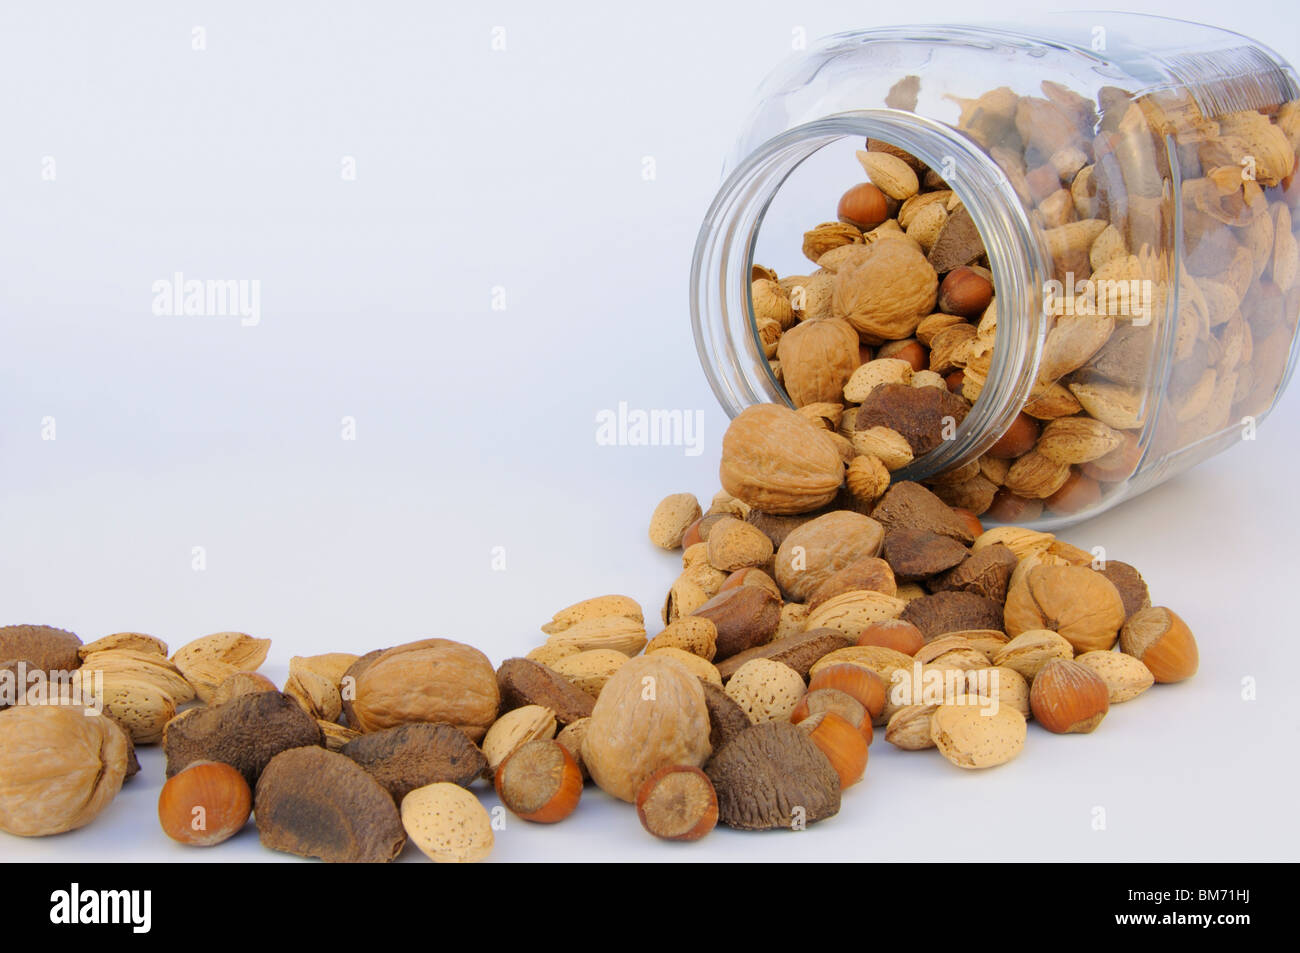 Mixed nuts in shells - Stock Image